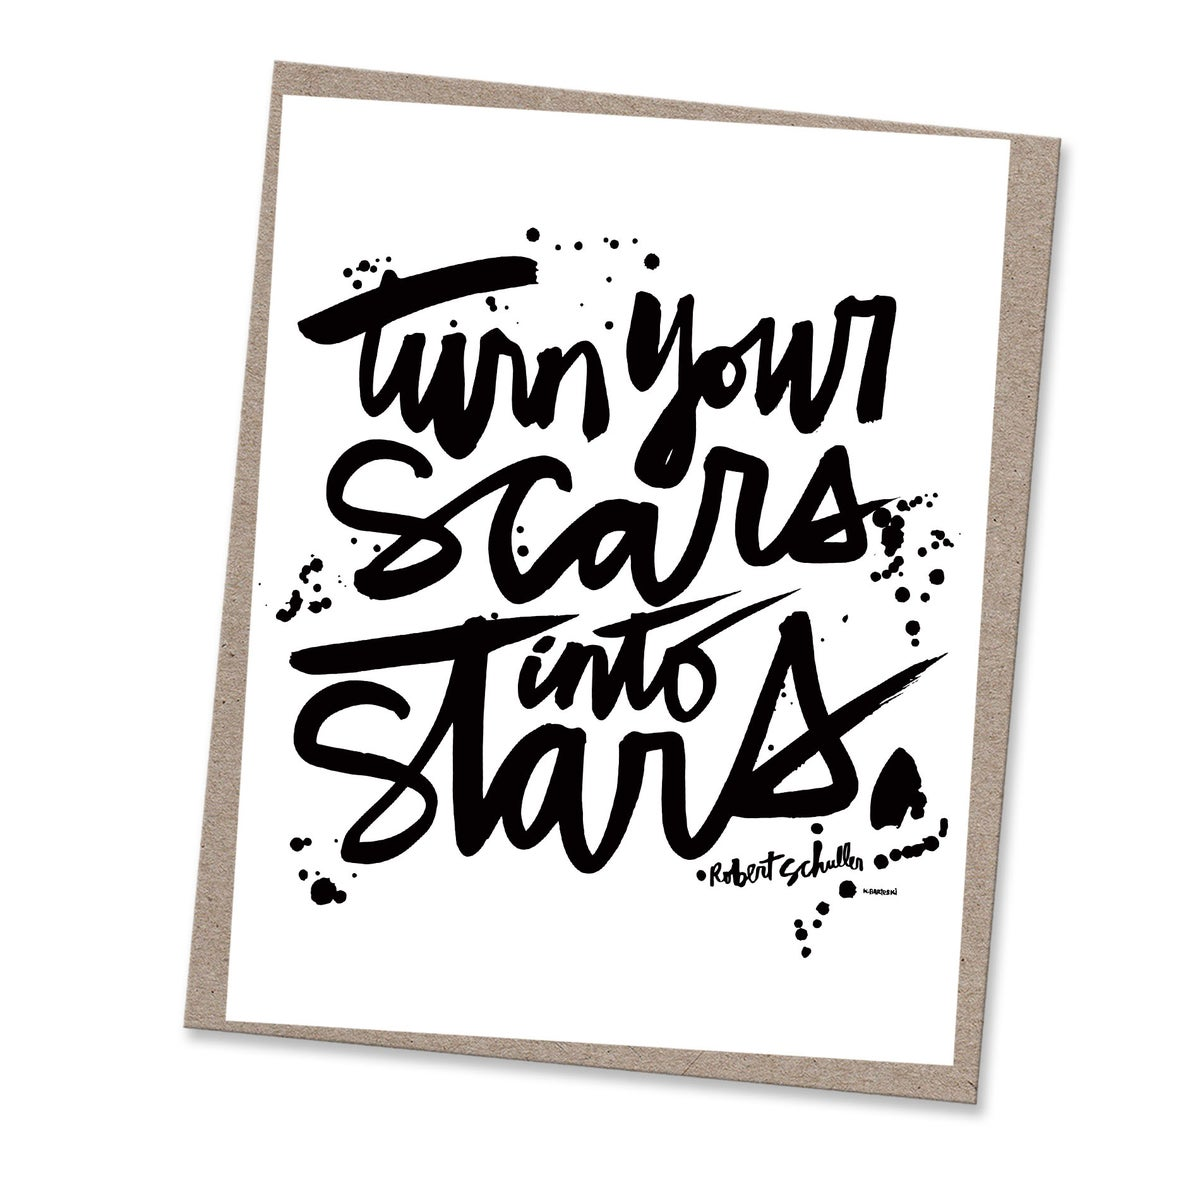 Image of SCARS INTO STARS #kbscript print